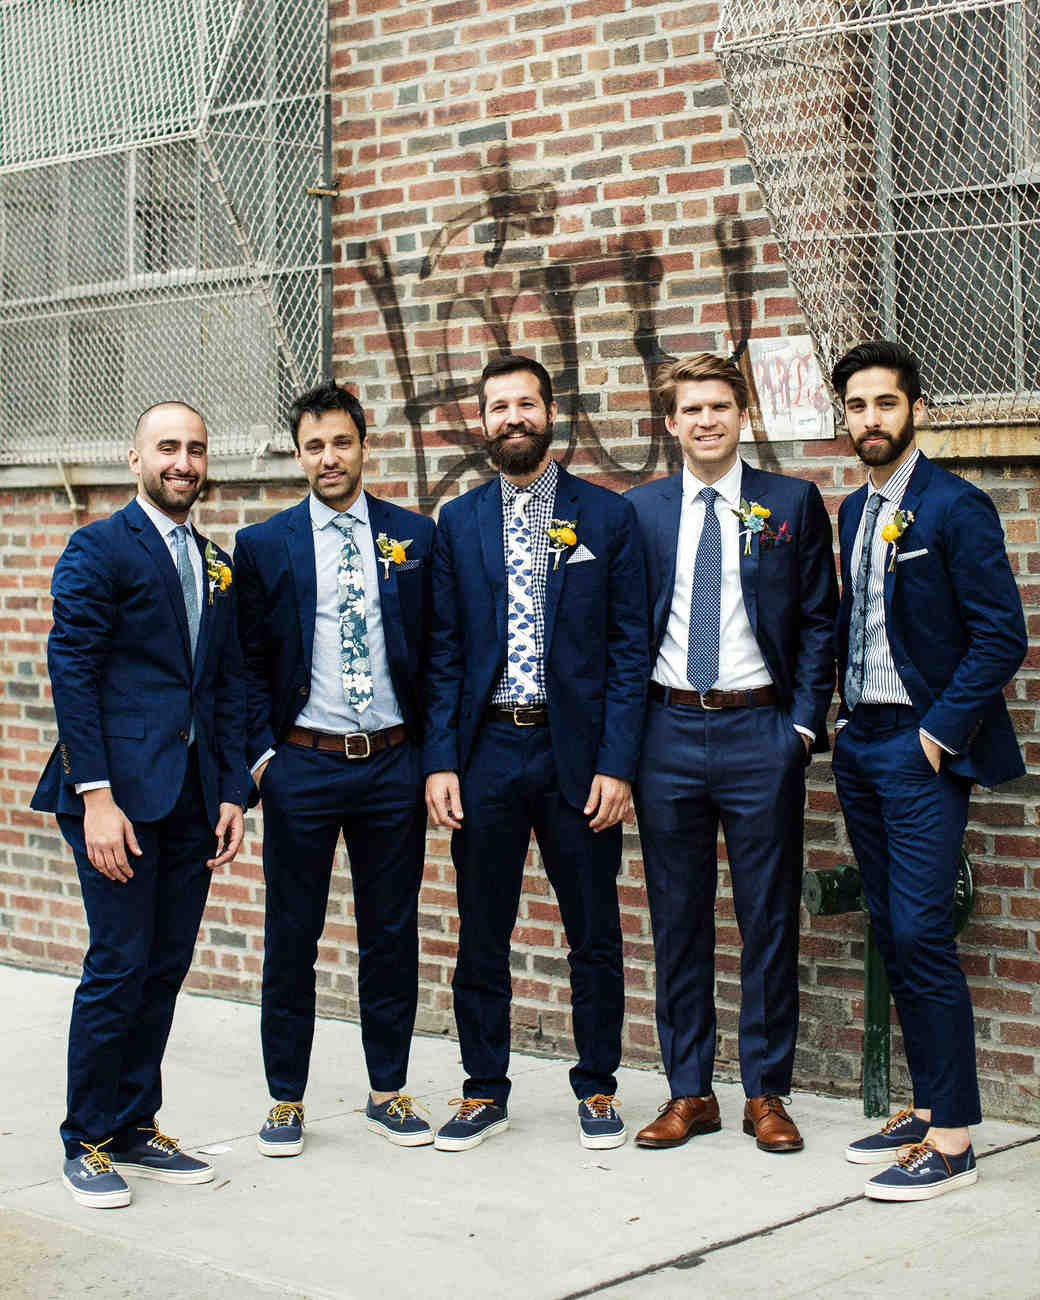 Olivia And Tyler S Black Tie Wedding In Their Family S: 29 Stylish Groomsmen From Real Weddings